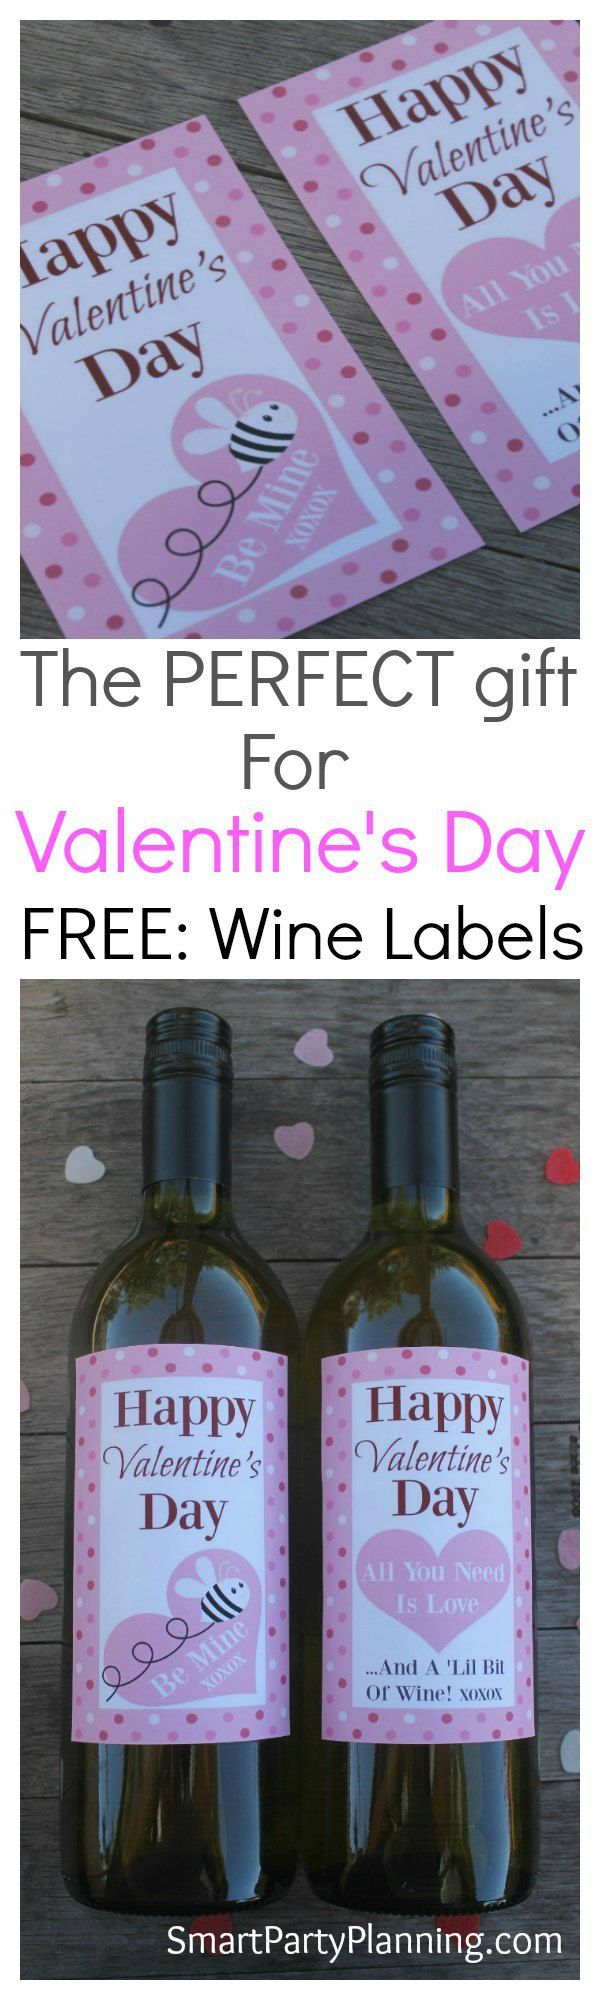 "Looking for that perfect gift for Valentines day gift that says ""I Love You"", but something that also won't break your family budget? These printable wine bottle labels make the perfect DIY gift and they are so easy to use. Simply print and attach to a favorite bottle of wine. Easy and affordable and perfect for your Valentine. #Winegift #Valentinesdayideas #Valentinesdaygift #Freeprintable"